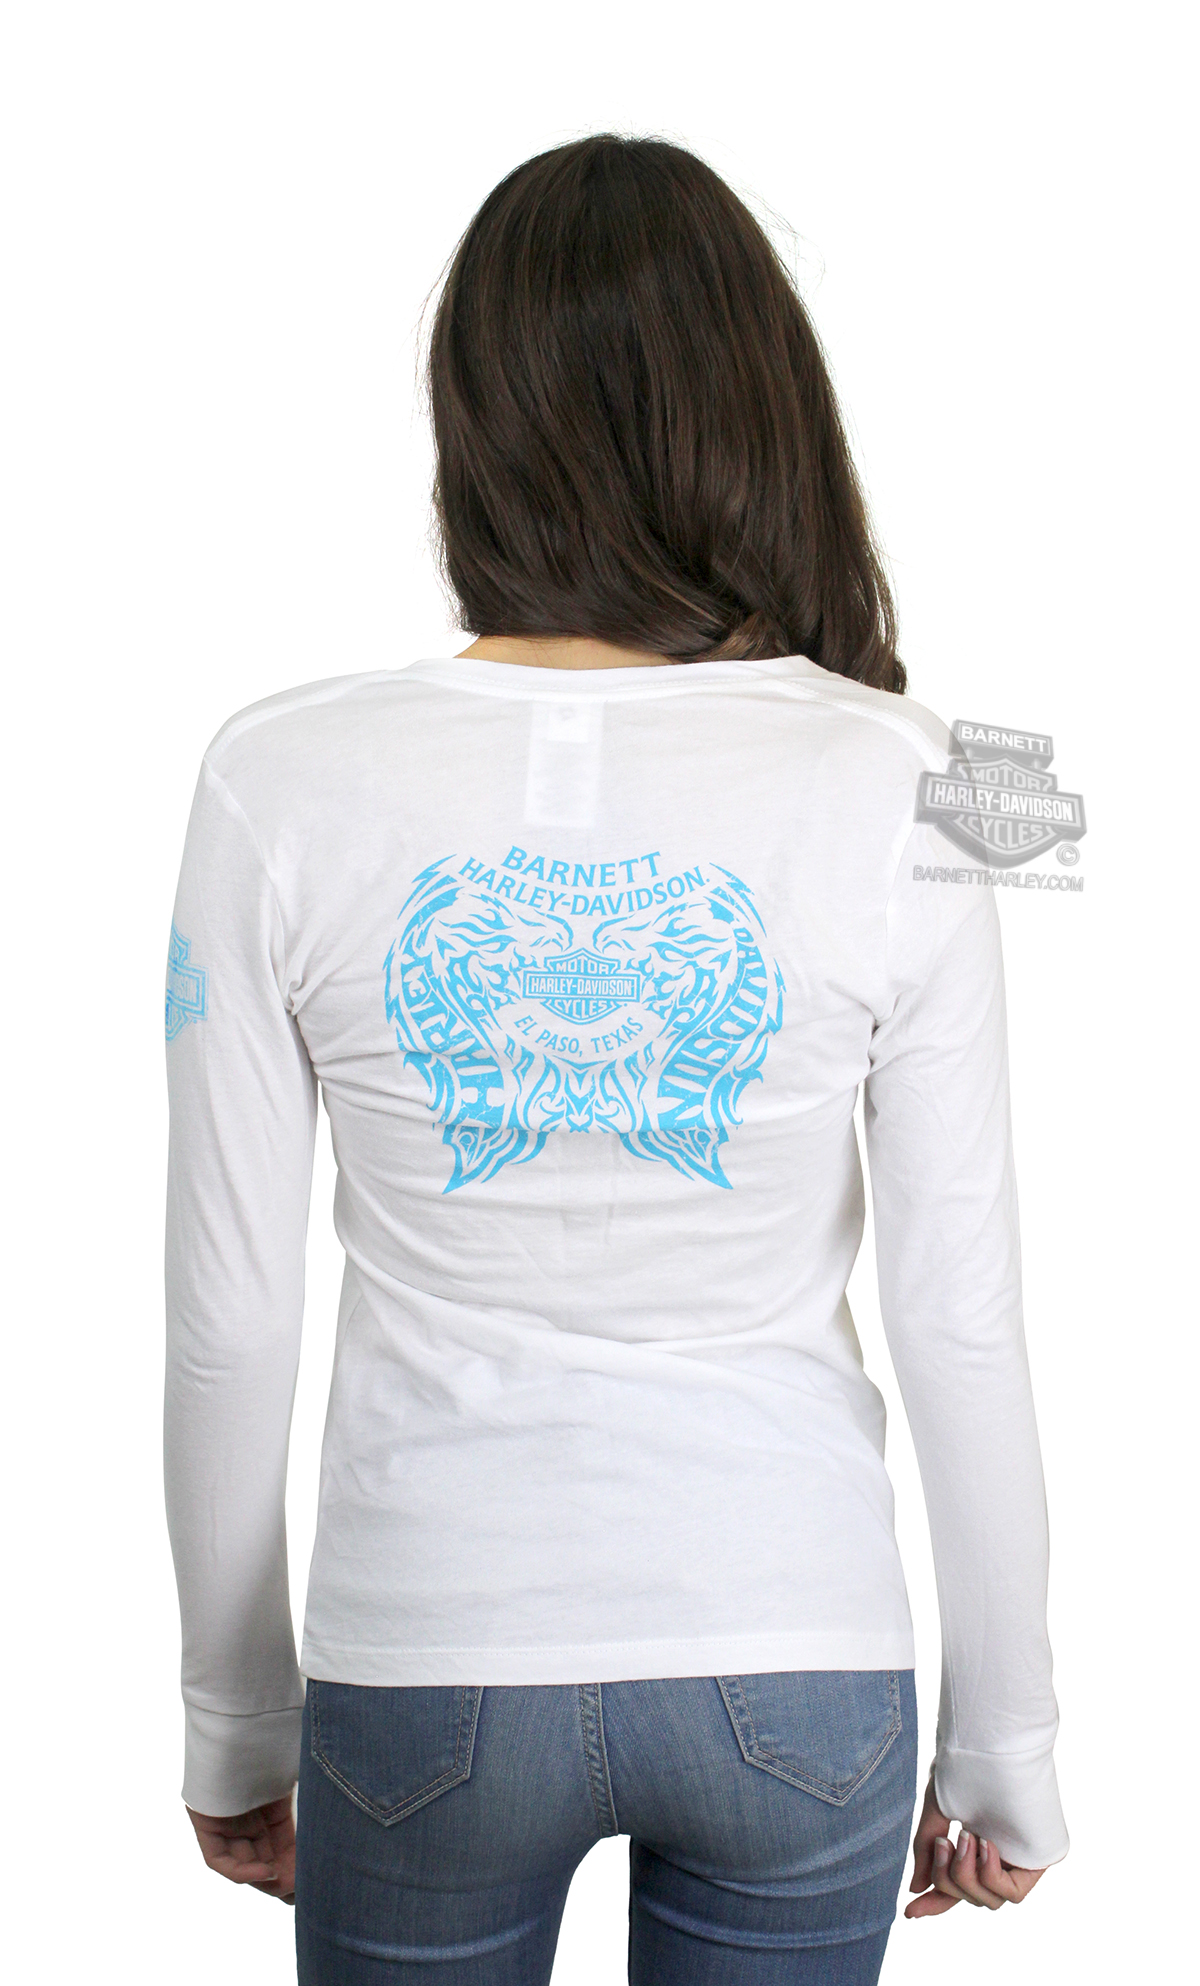 Police Motorcycle T Shirts